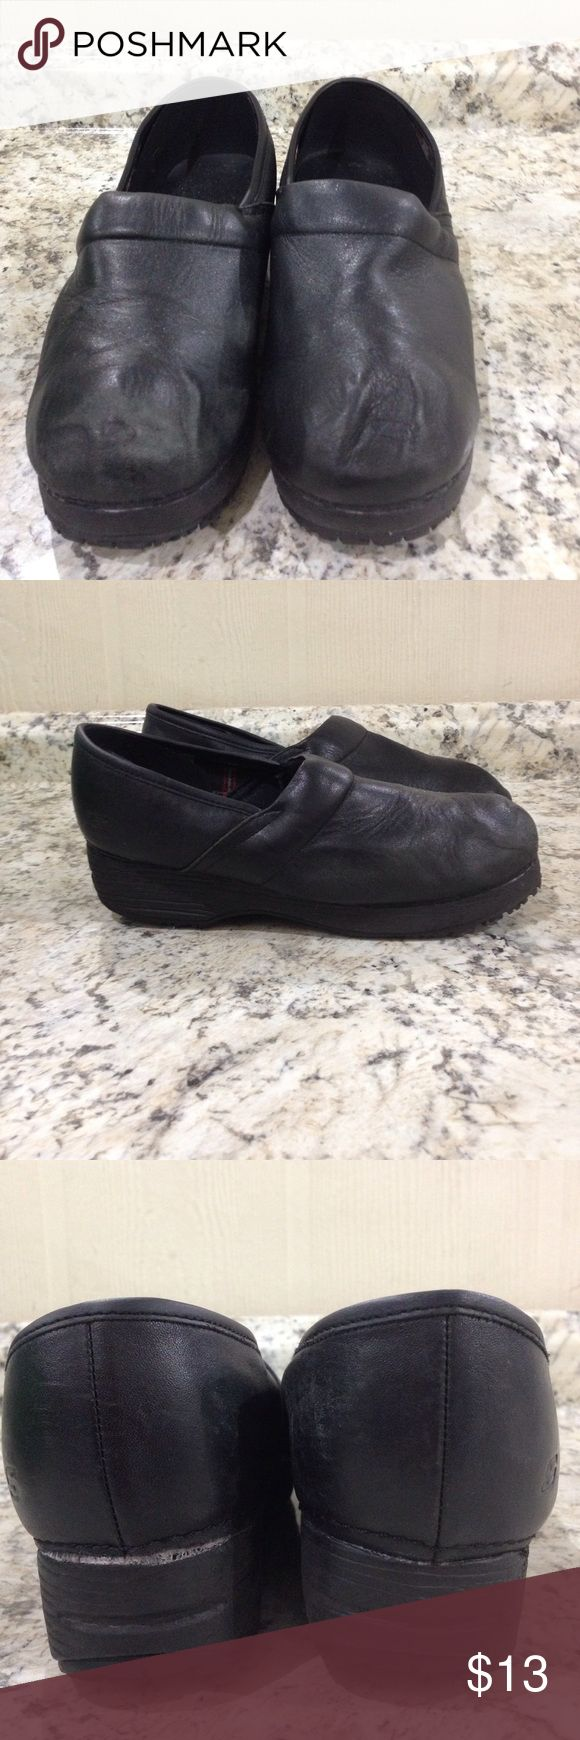 🌴NEW LISTING🌴 Skechers Work Slip Resistant Clogs Black. Slip resistant. Show signs of wear. See pics. size 9. (9/23) Skechers Shoes Mules & Clogs